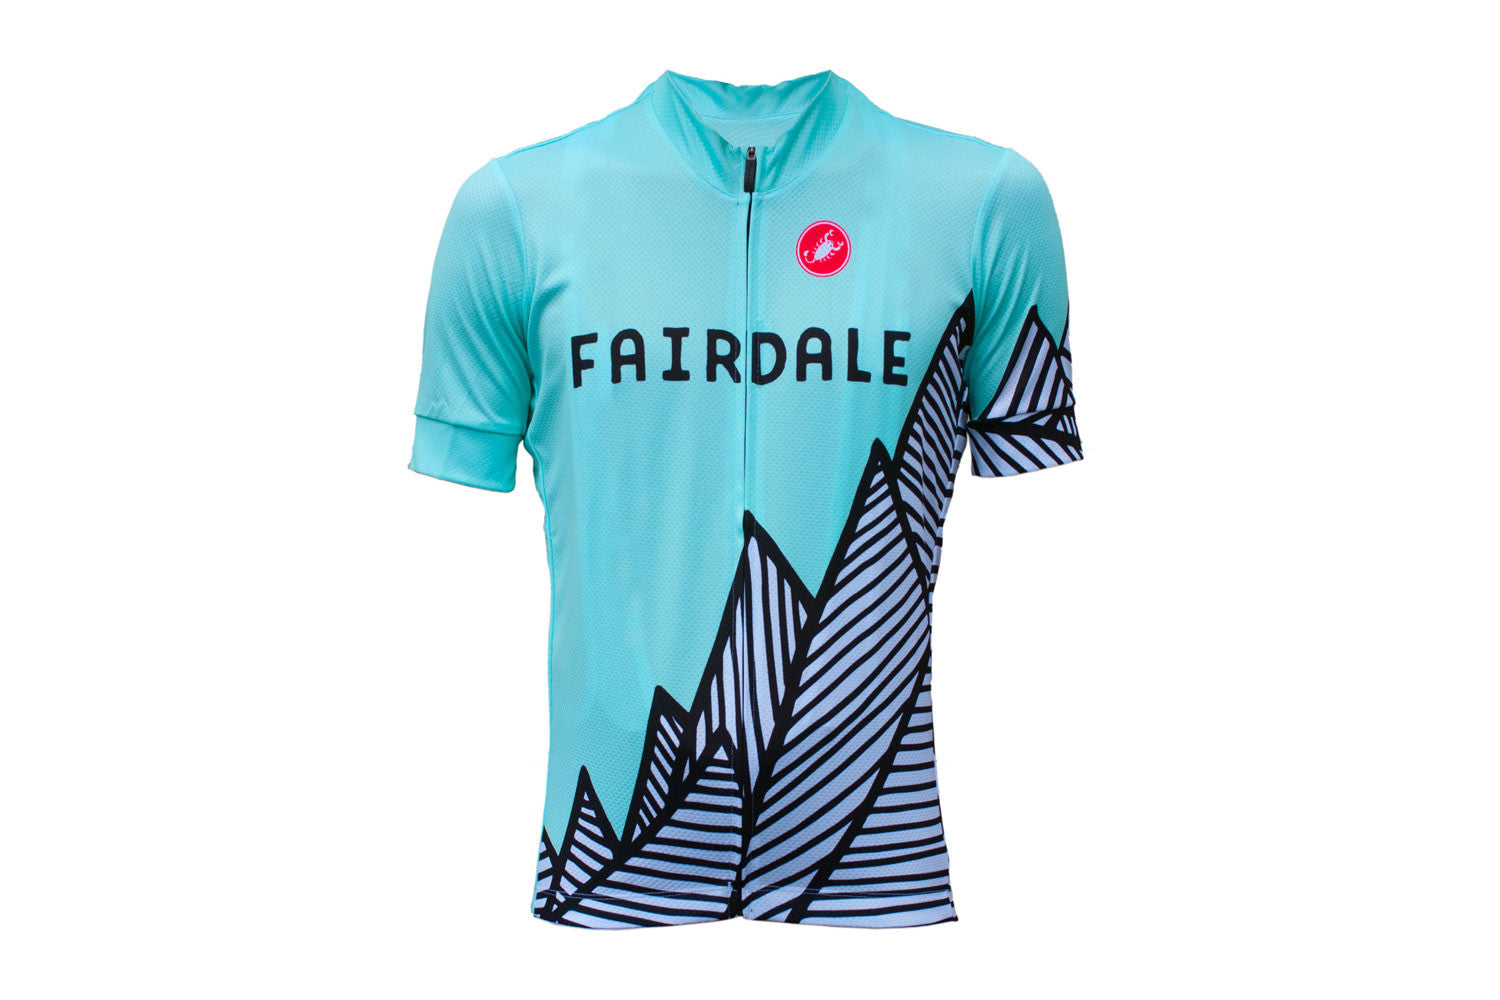 Fairdale Mountains (Training) Cycling Jersey - by Castelli